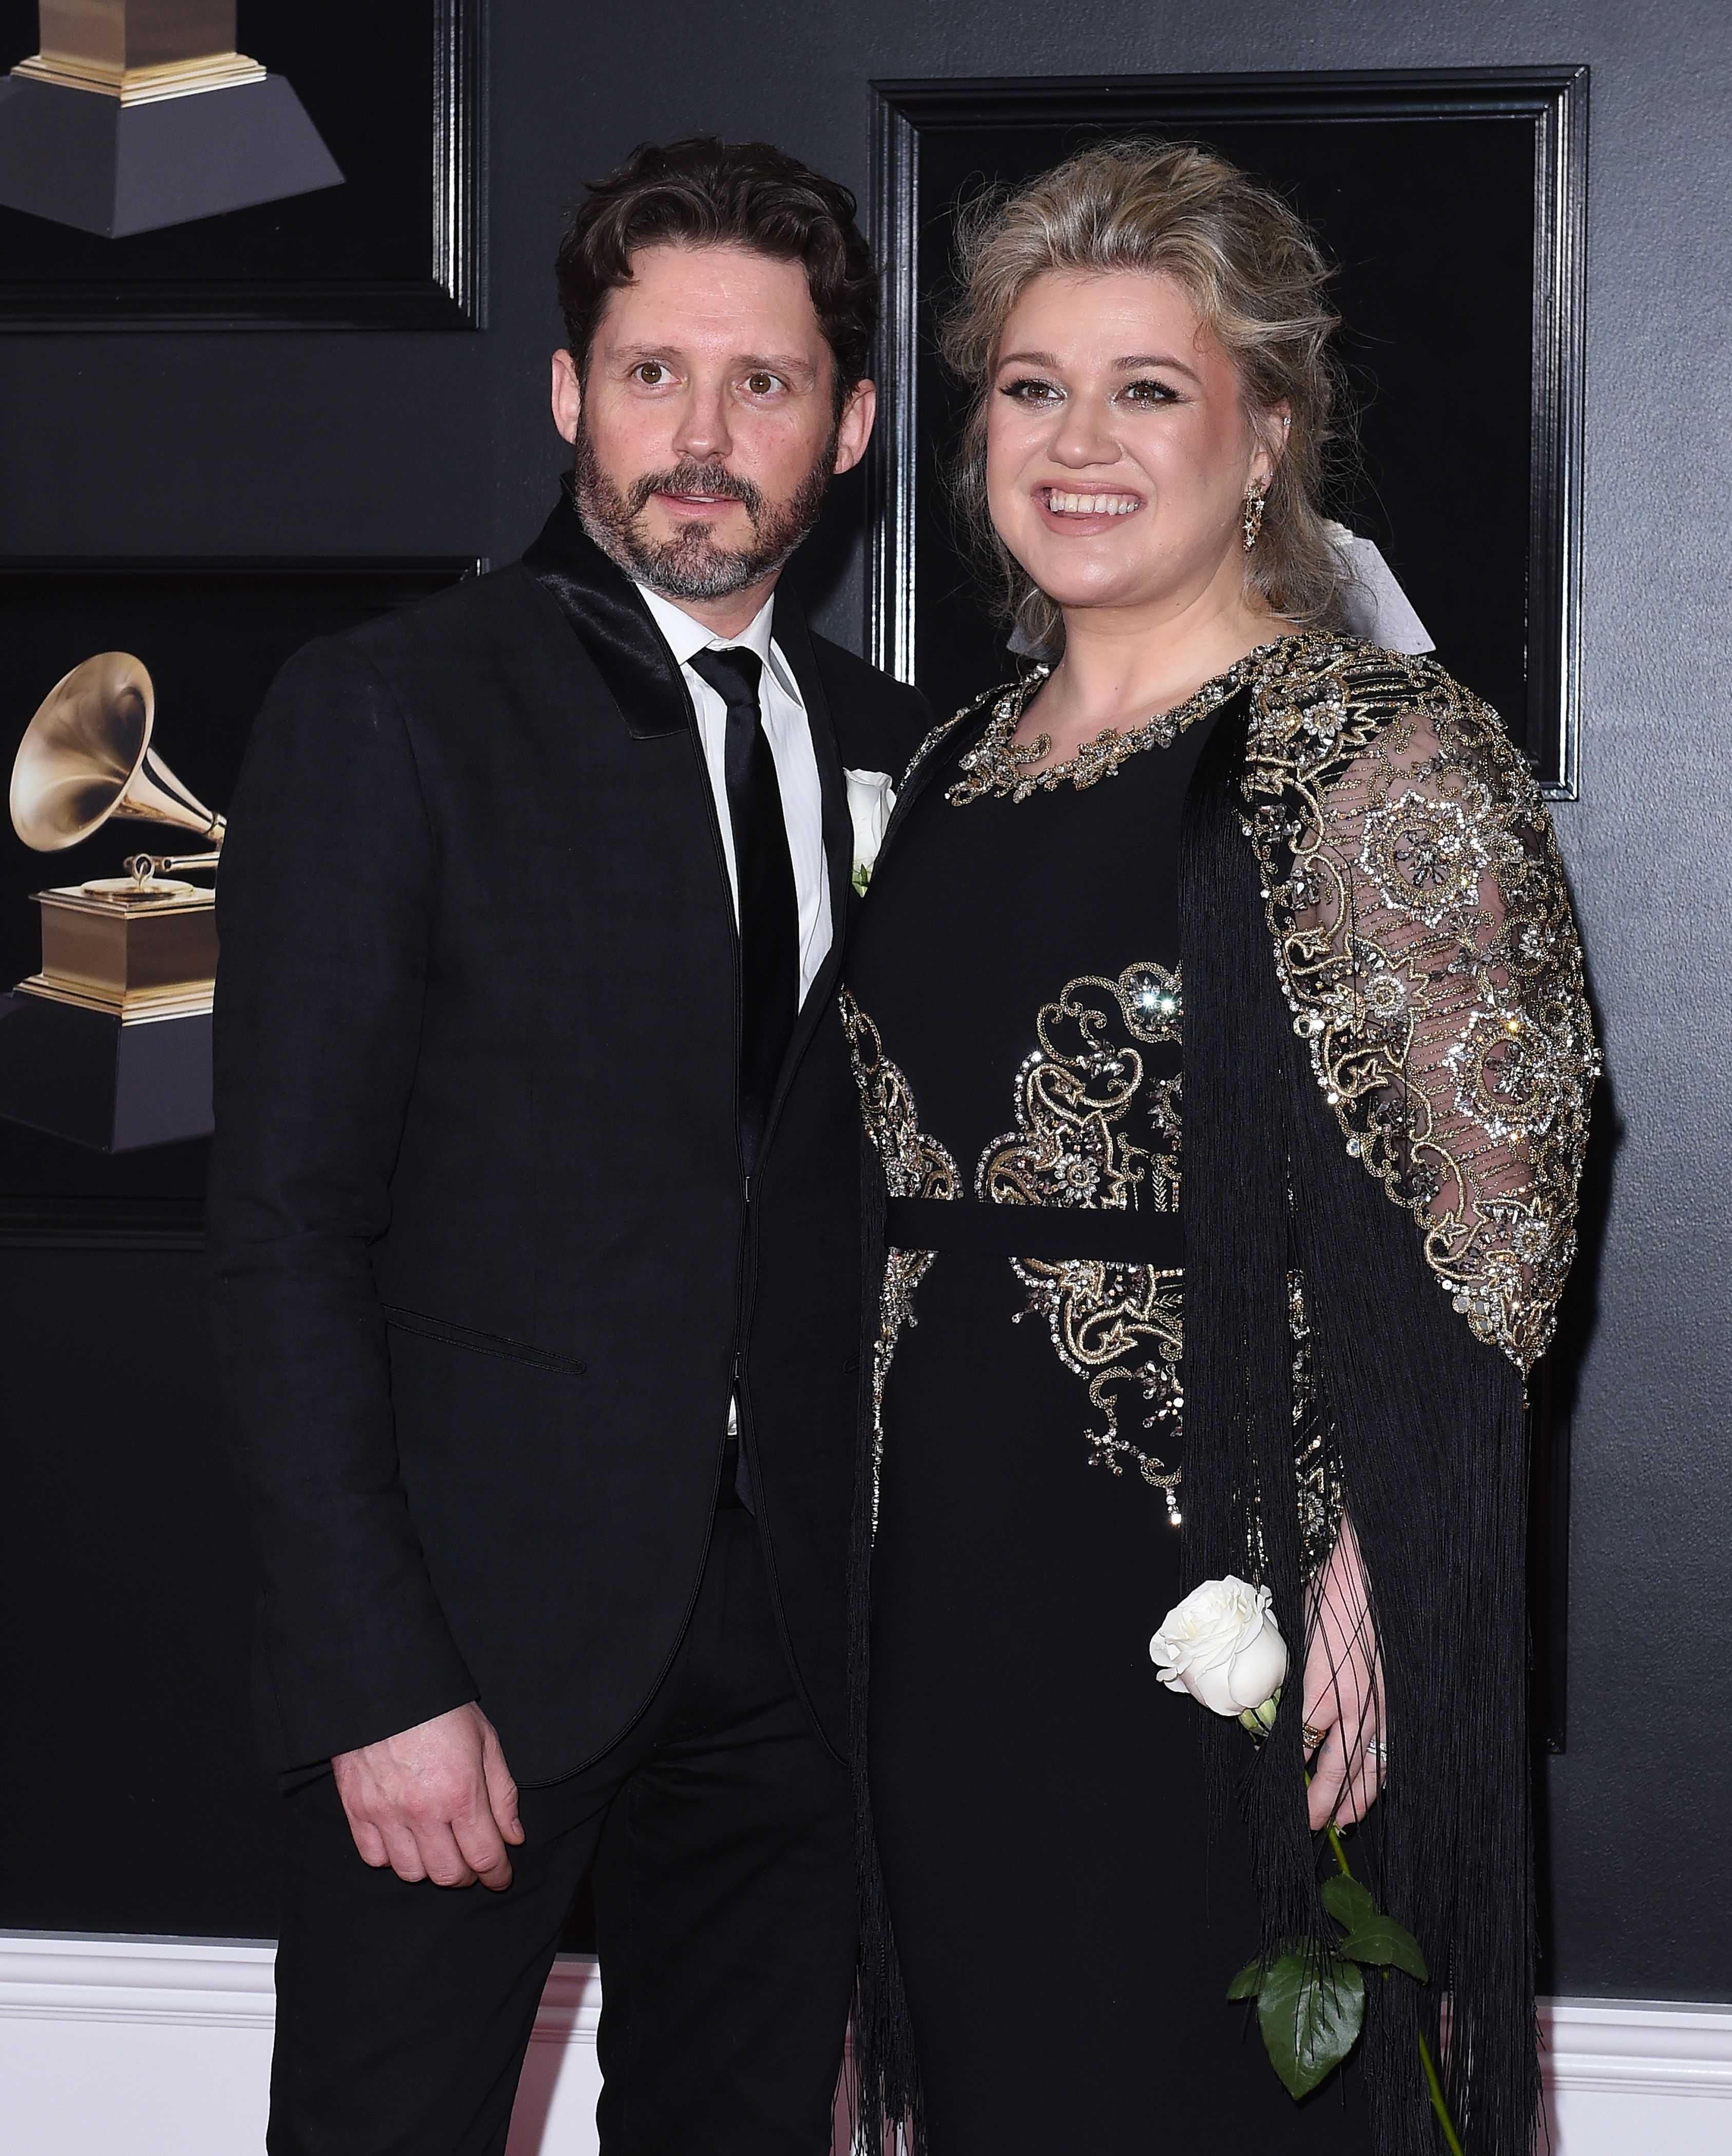 Brandon Blackstock and Kelly Clarkson at the 60th Annual Grammy Awards on January 28, 2018, in New York City | Photo: Axelle/Bauer-Griffin/FilmMagic/Getty Images